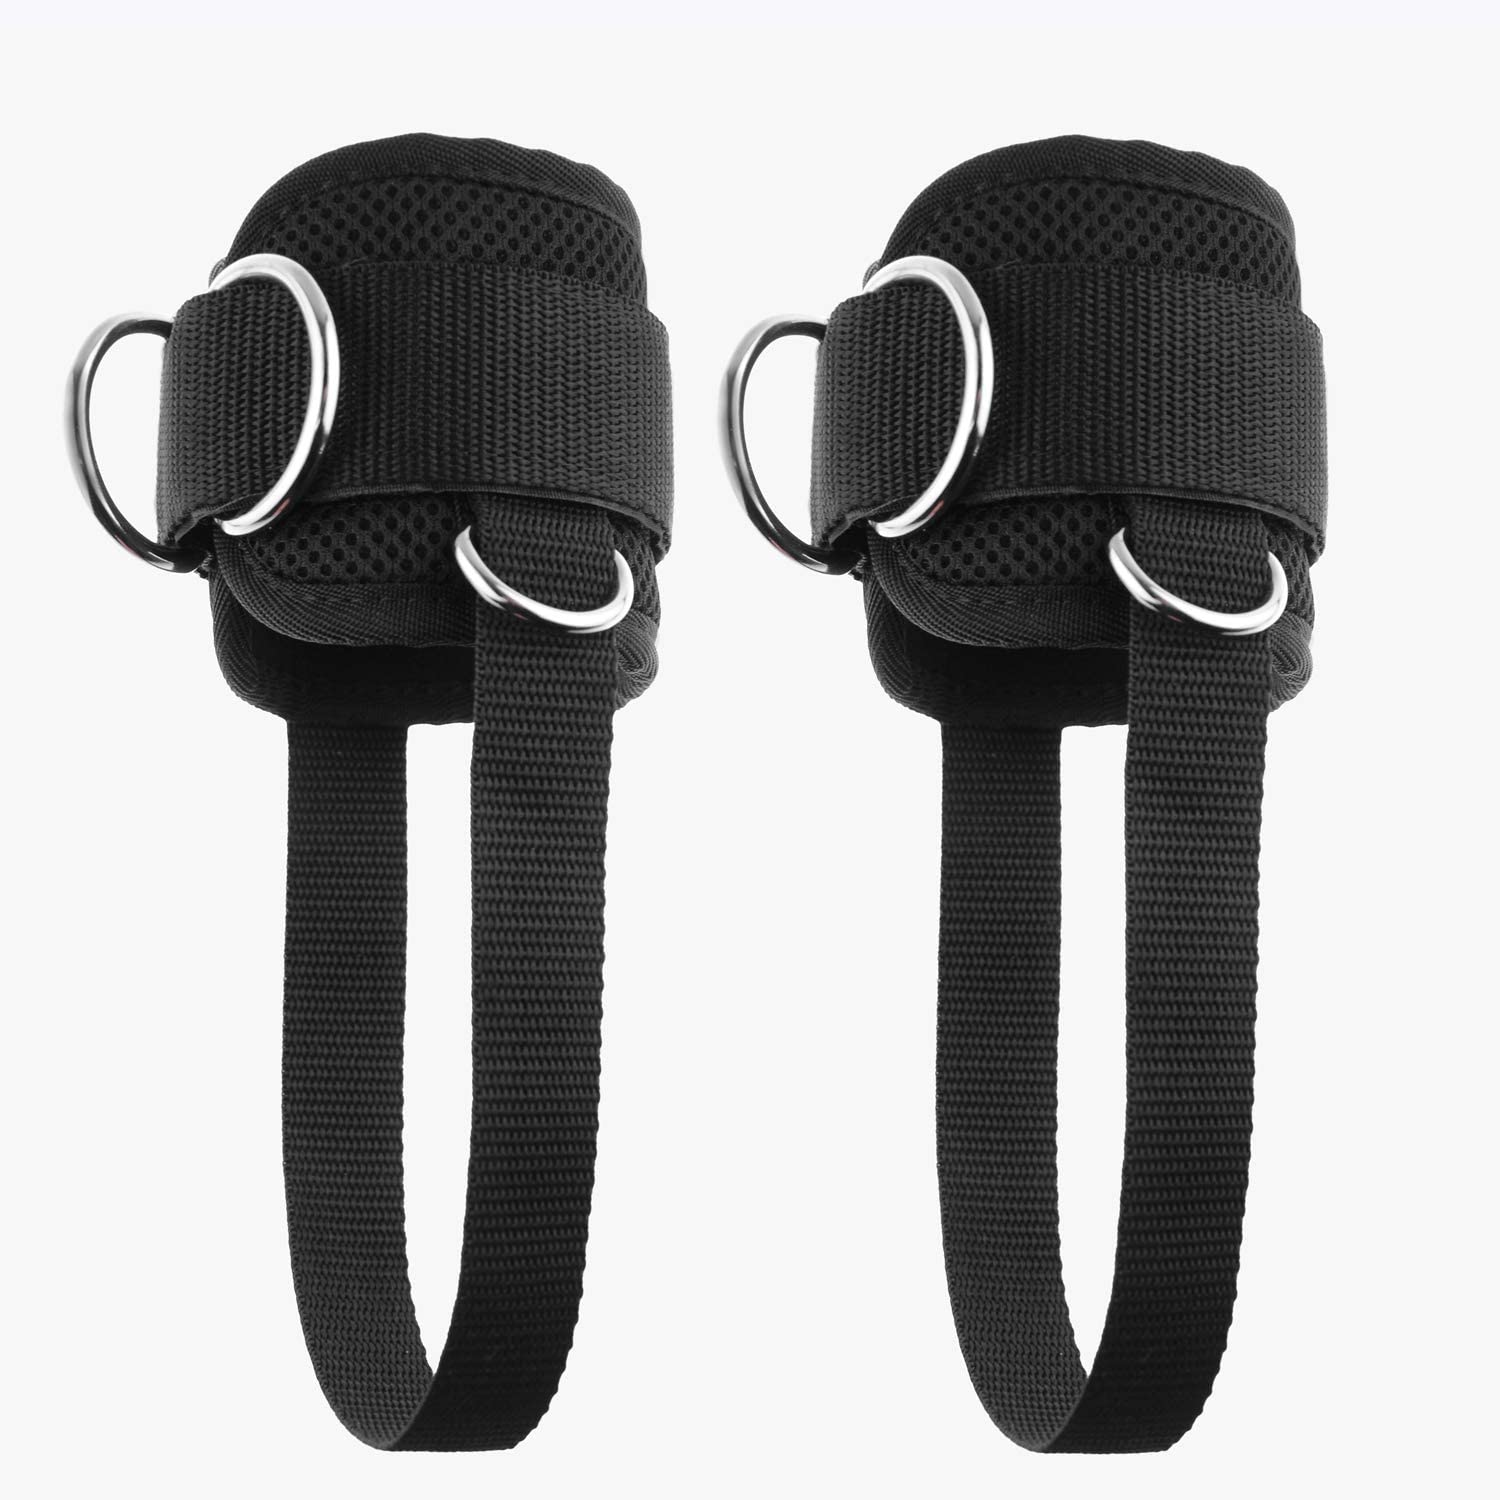 YCYU Upgrade Cable Machine Ankle Straps Fitness Cuffs for Men & Women, Neoprene Padded 4 D-Ring Heavy Duty Home Gym Cable Attachment for Glute Leg Butt Workout